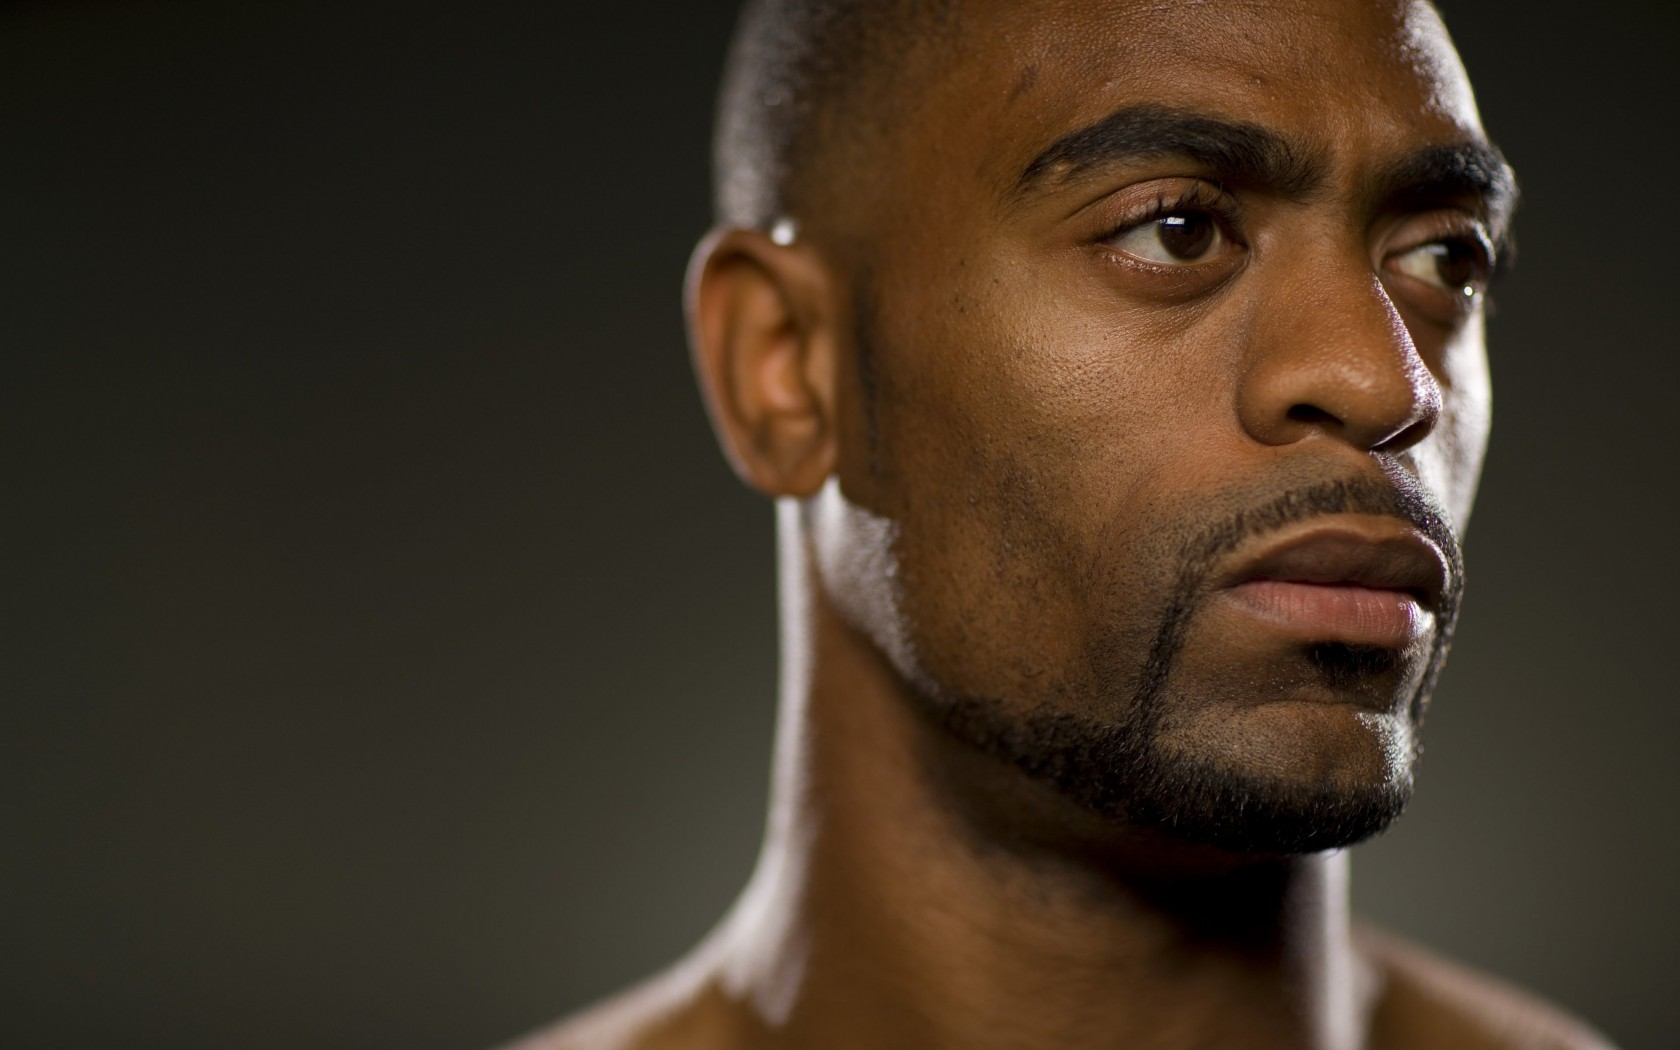 Tyson Gay Wallpaper for Desktop 1680x1050